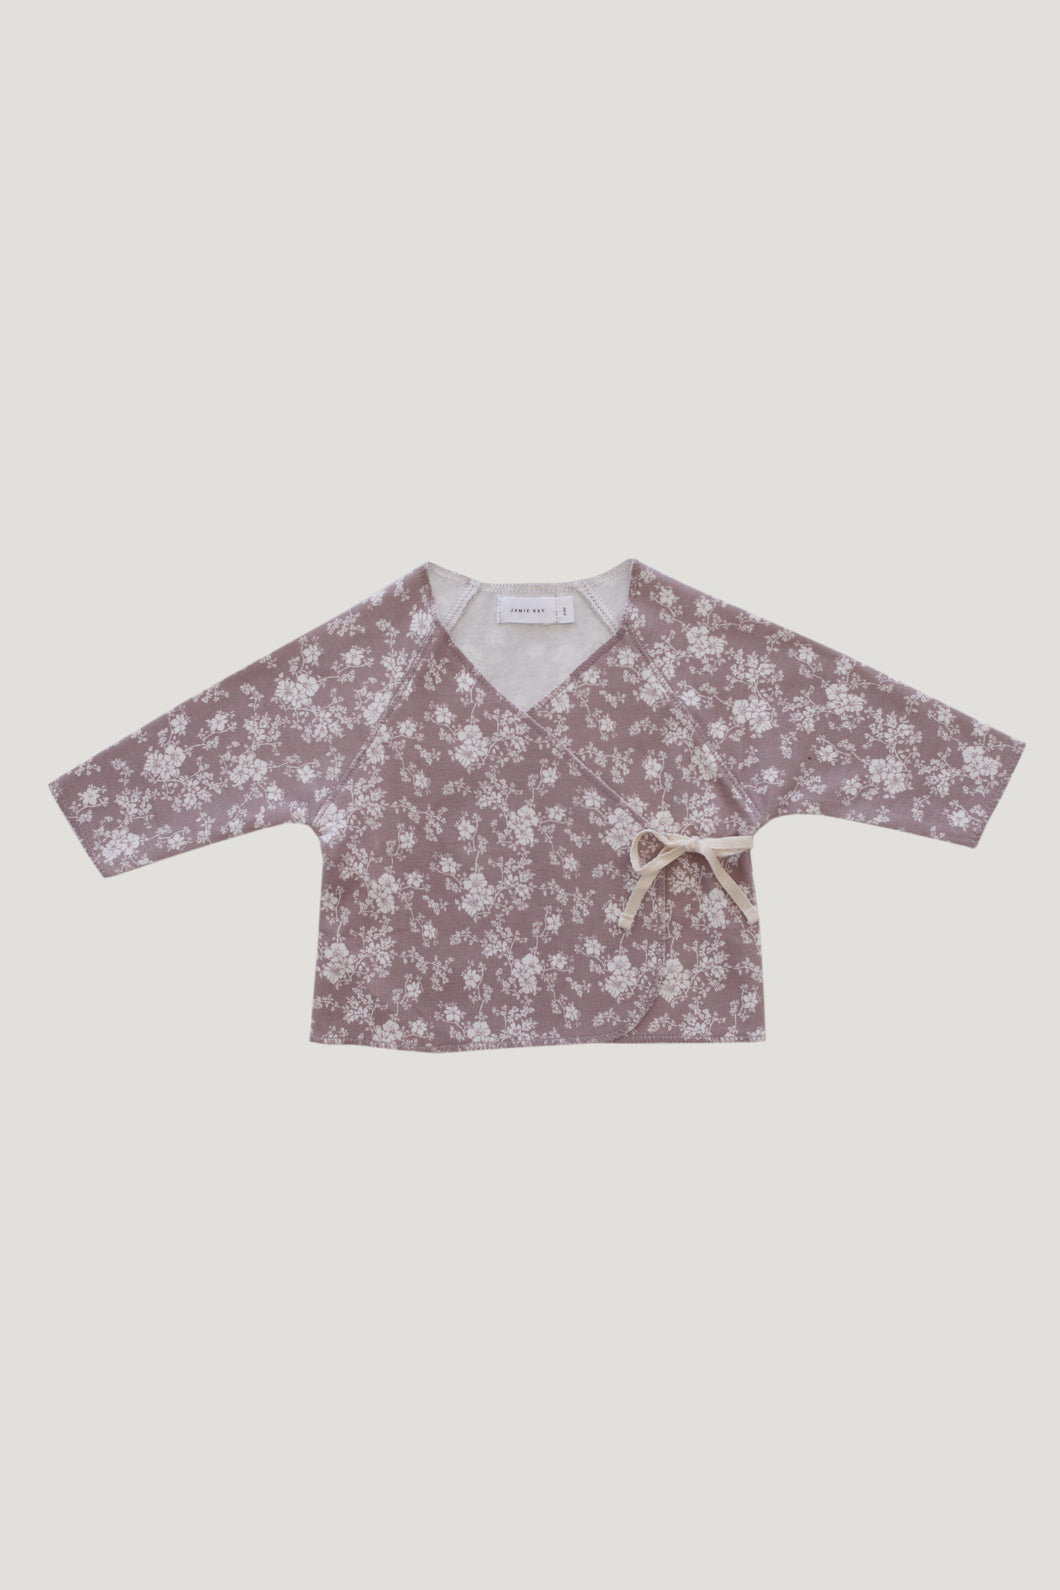 Wrap Top | Fawn Floral {LAST ONE Size 6-12m}